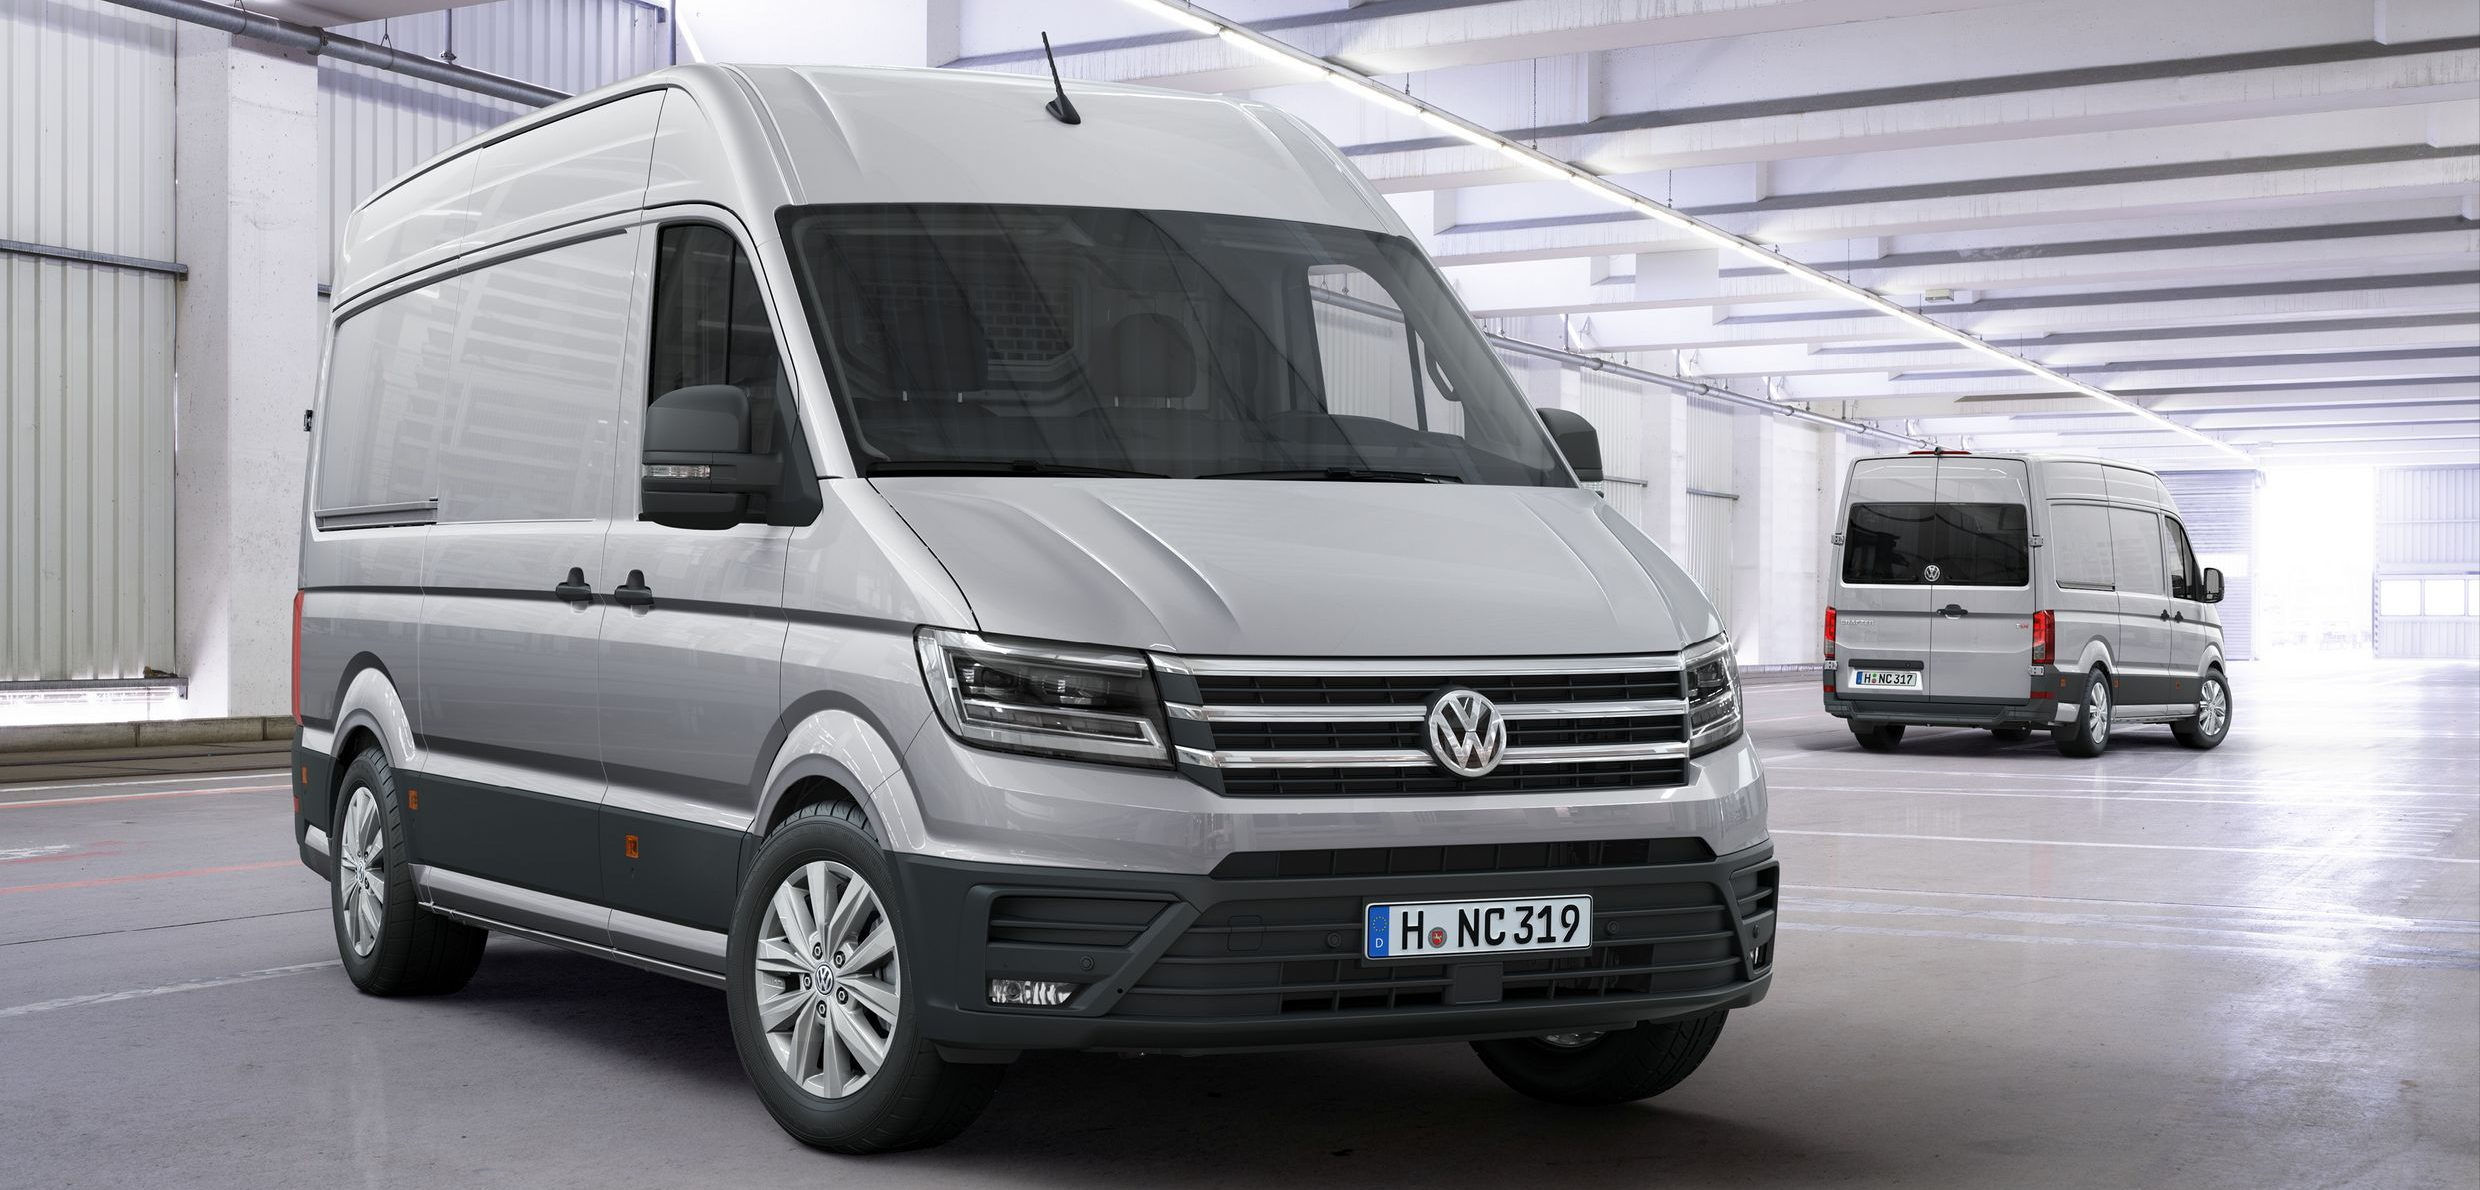 new-2017-volkswagen-crafter-debuts-with-fwd-option-and-class-leading-features_1